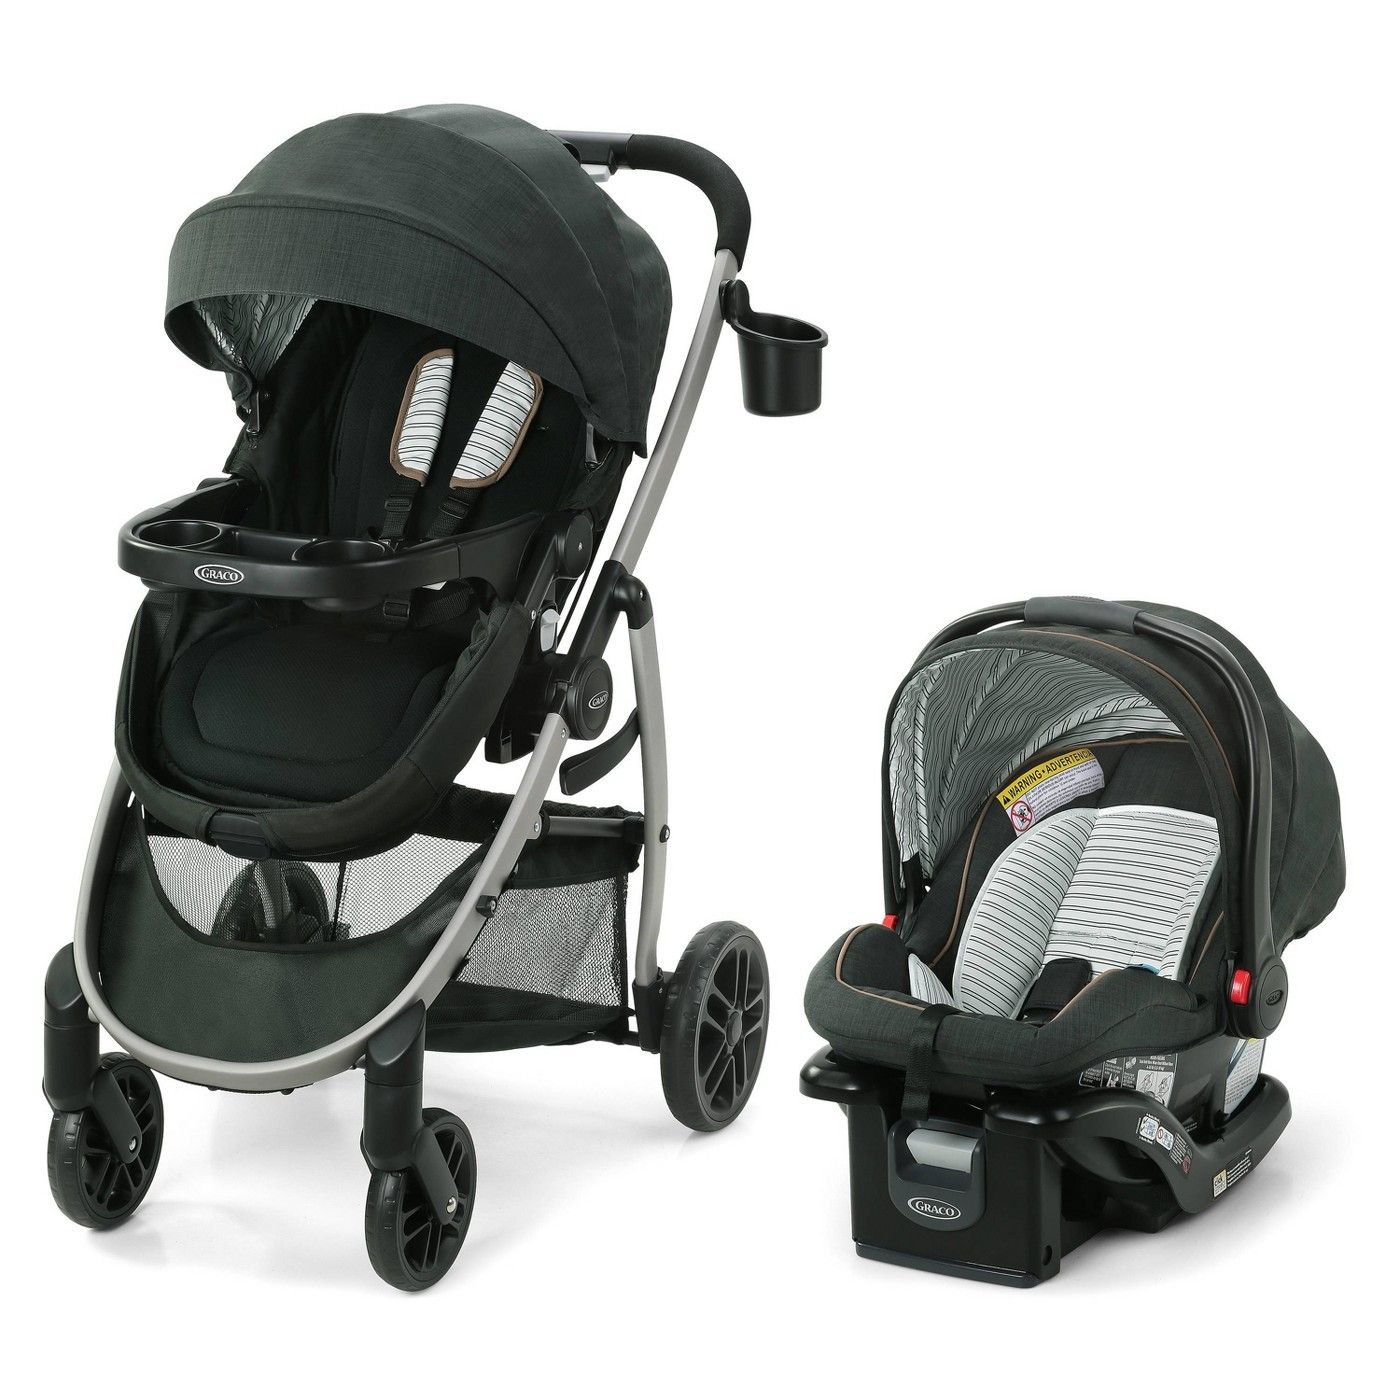 Graco Modes Pramette Travel System in 2020 Graco modes